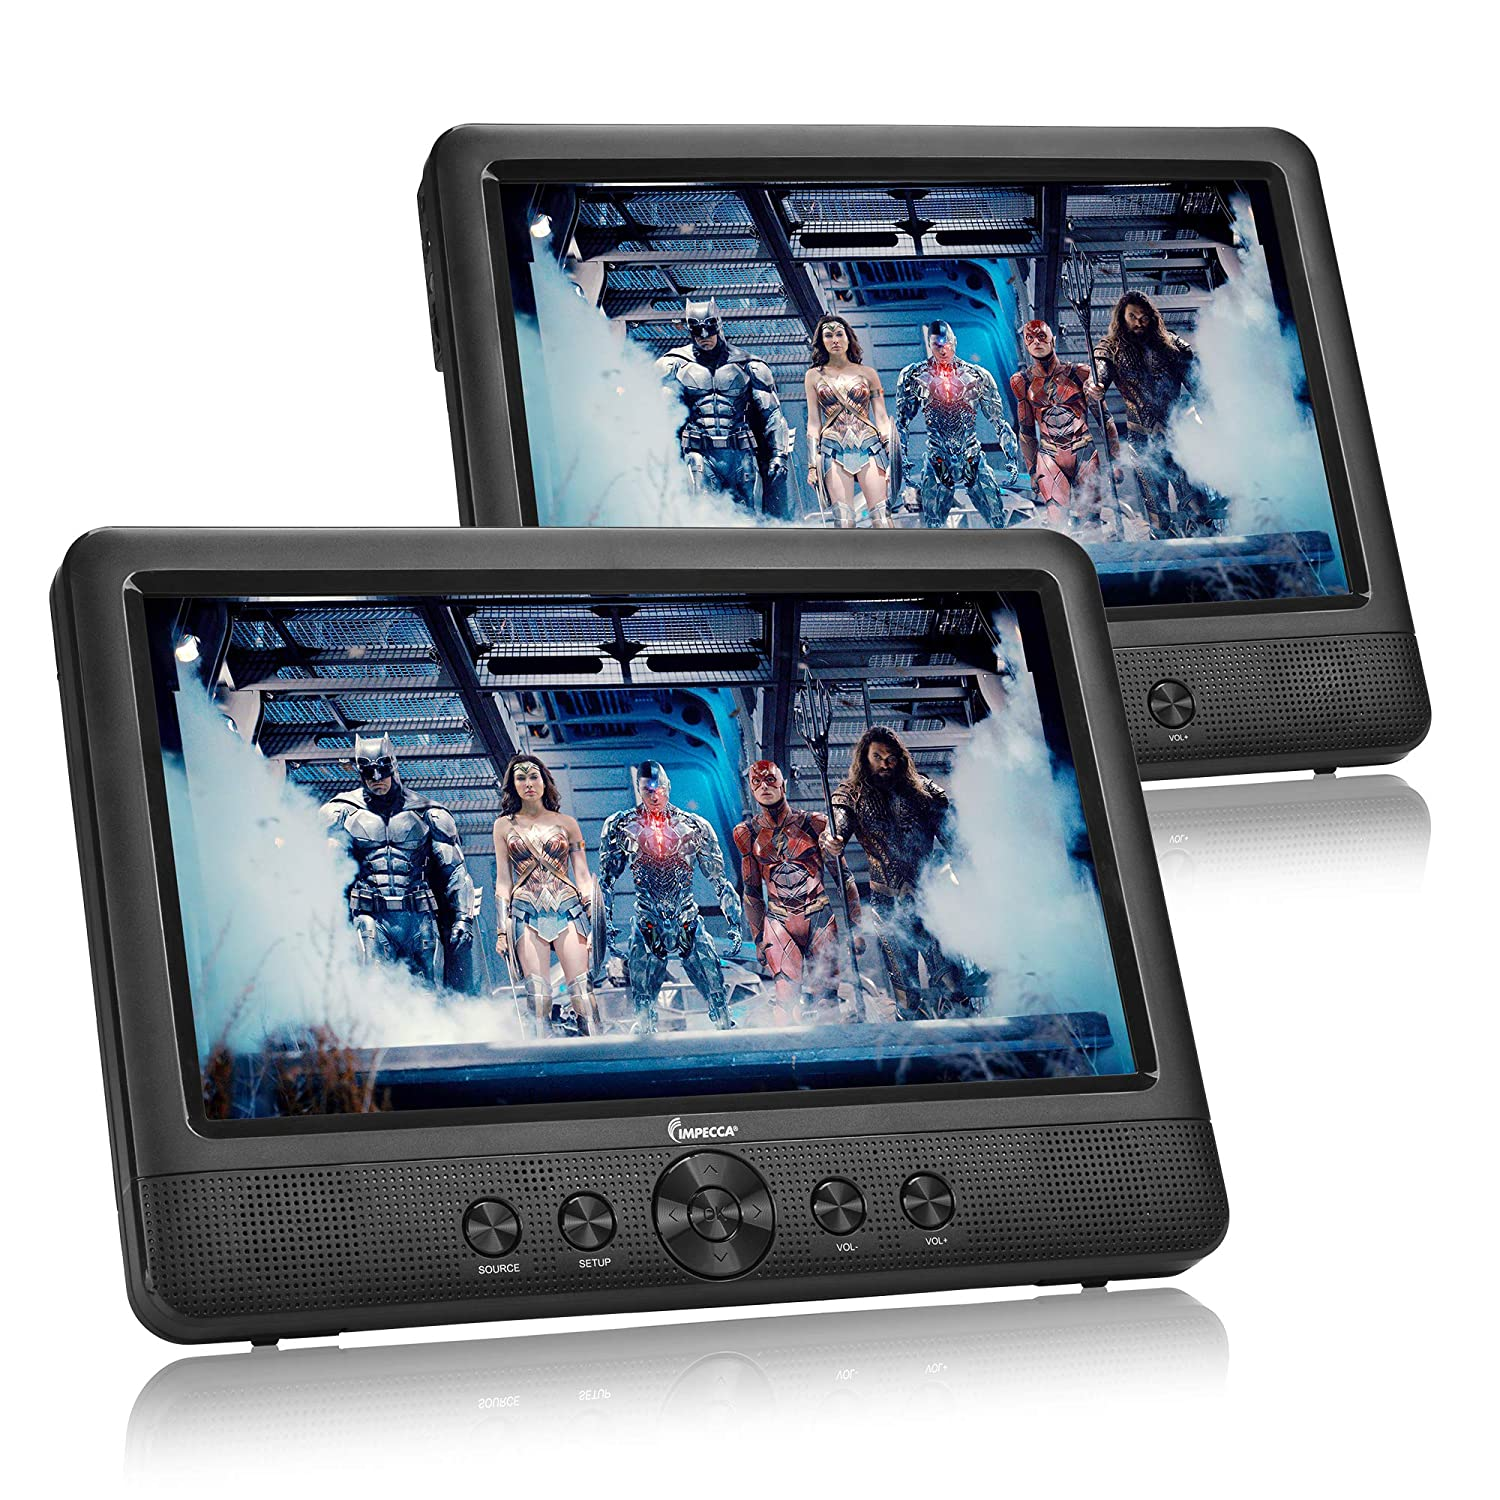 """IMPECCA DVD Player, Portable 10.1"""" Dual Screen DVD Player for Car Headrest or Home with USB/SD Card Reader, Built in Rechargeable Battery, Last Memory Function, Two Screens Play One Movie"""